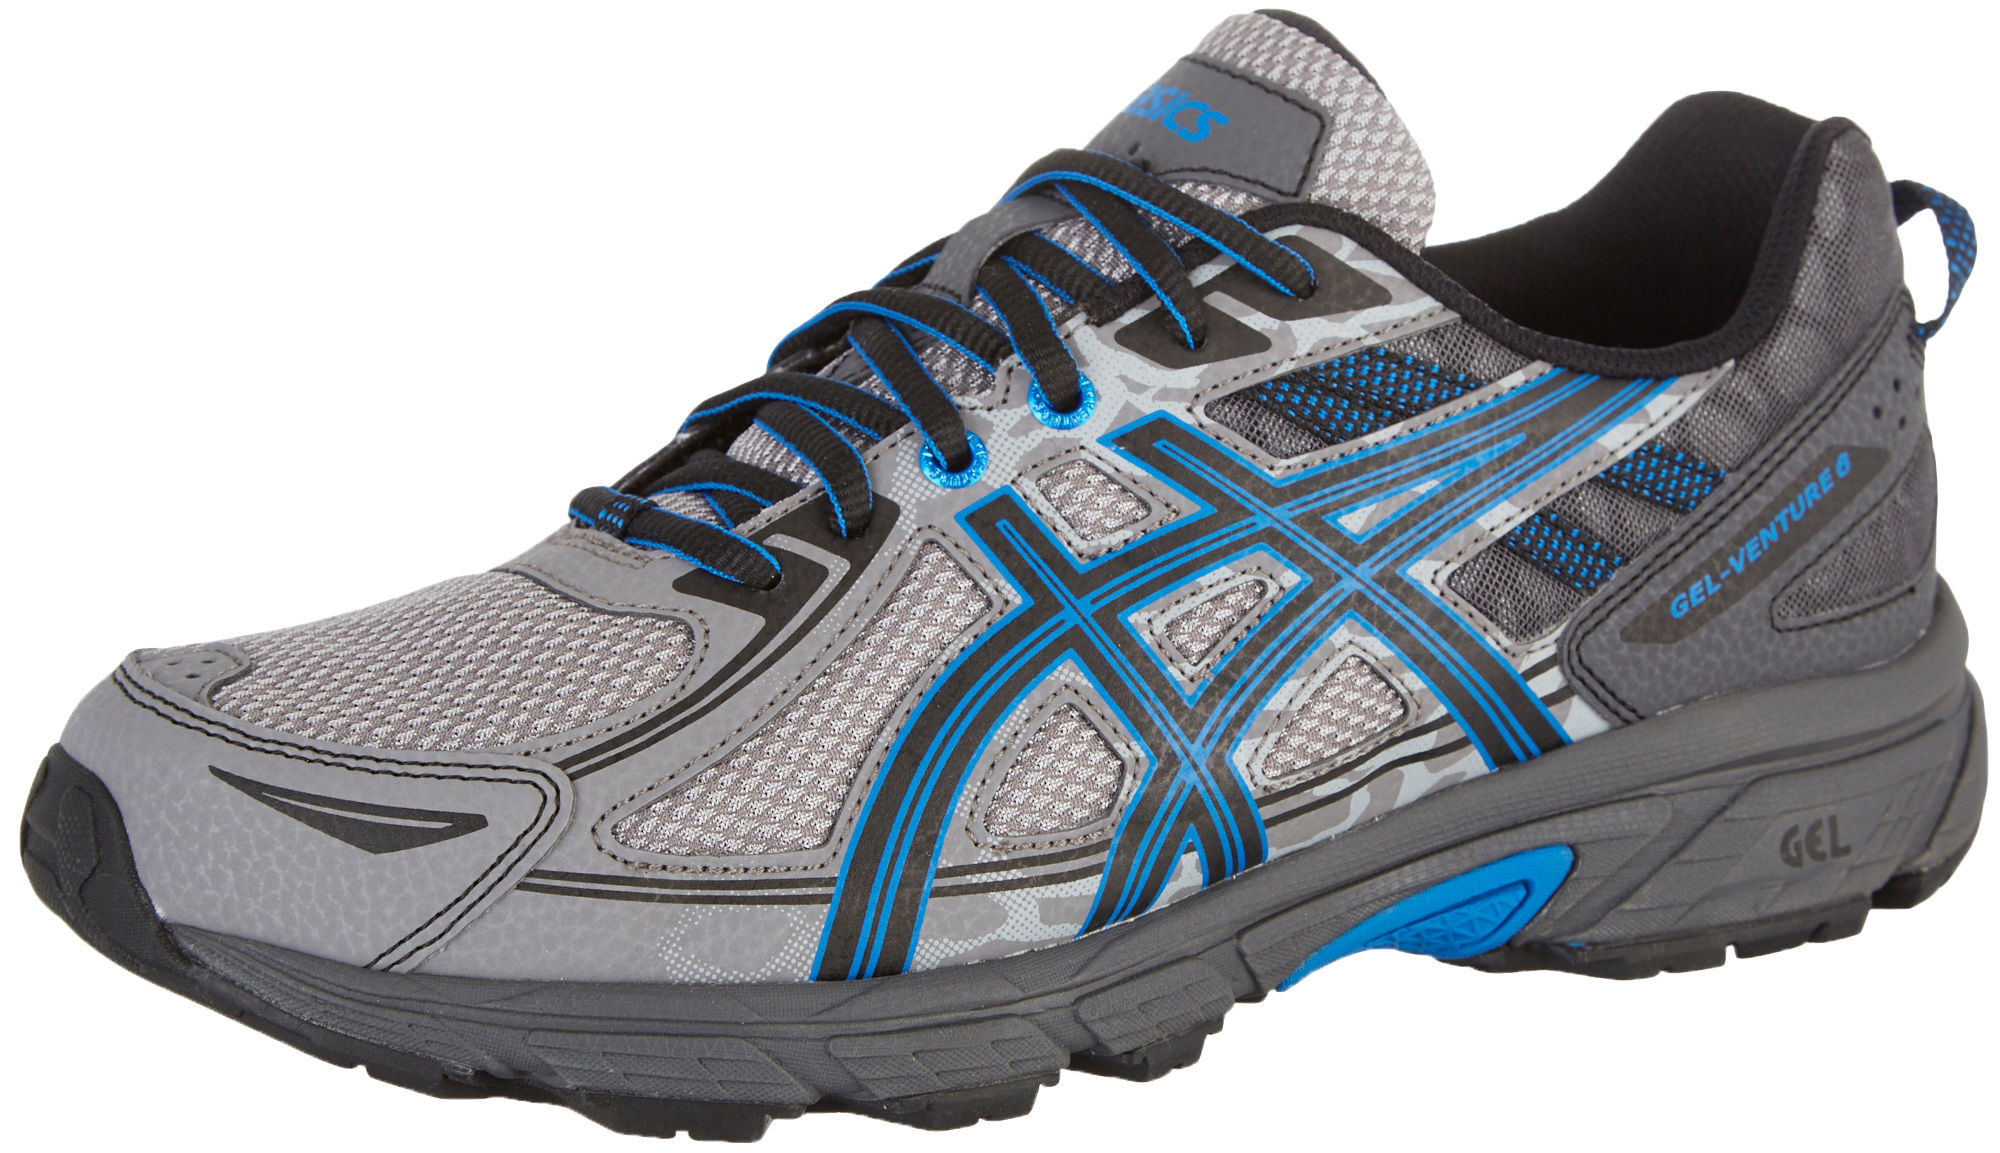 Asics Mens Gel Venture 6 Athletic Shoes | eBay